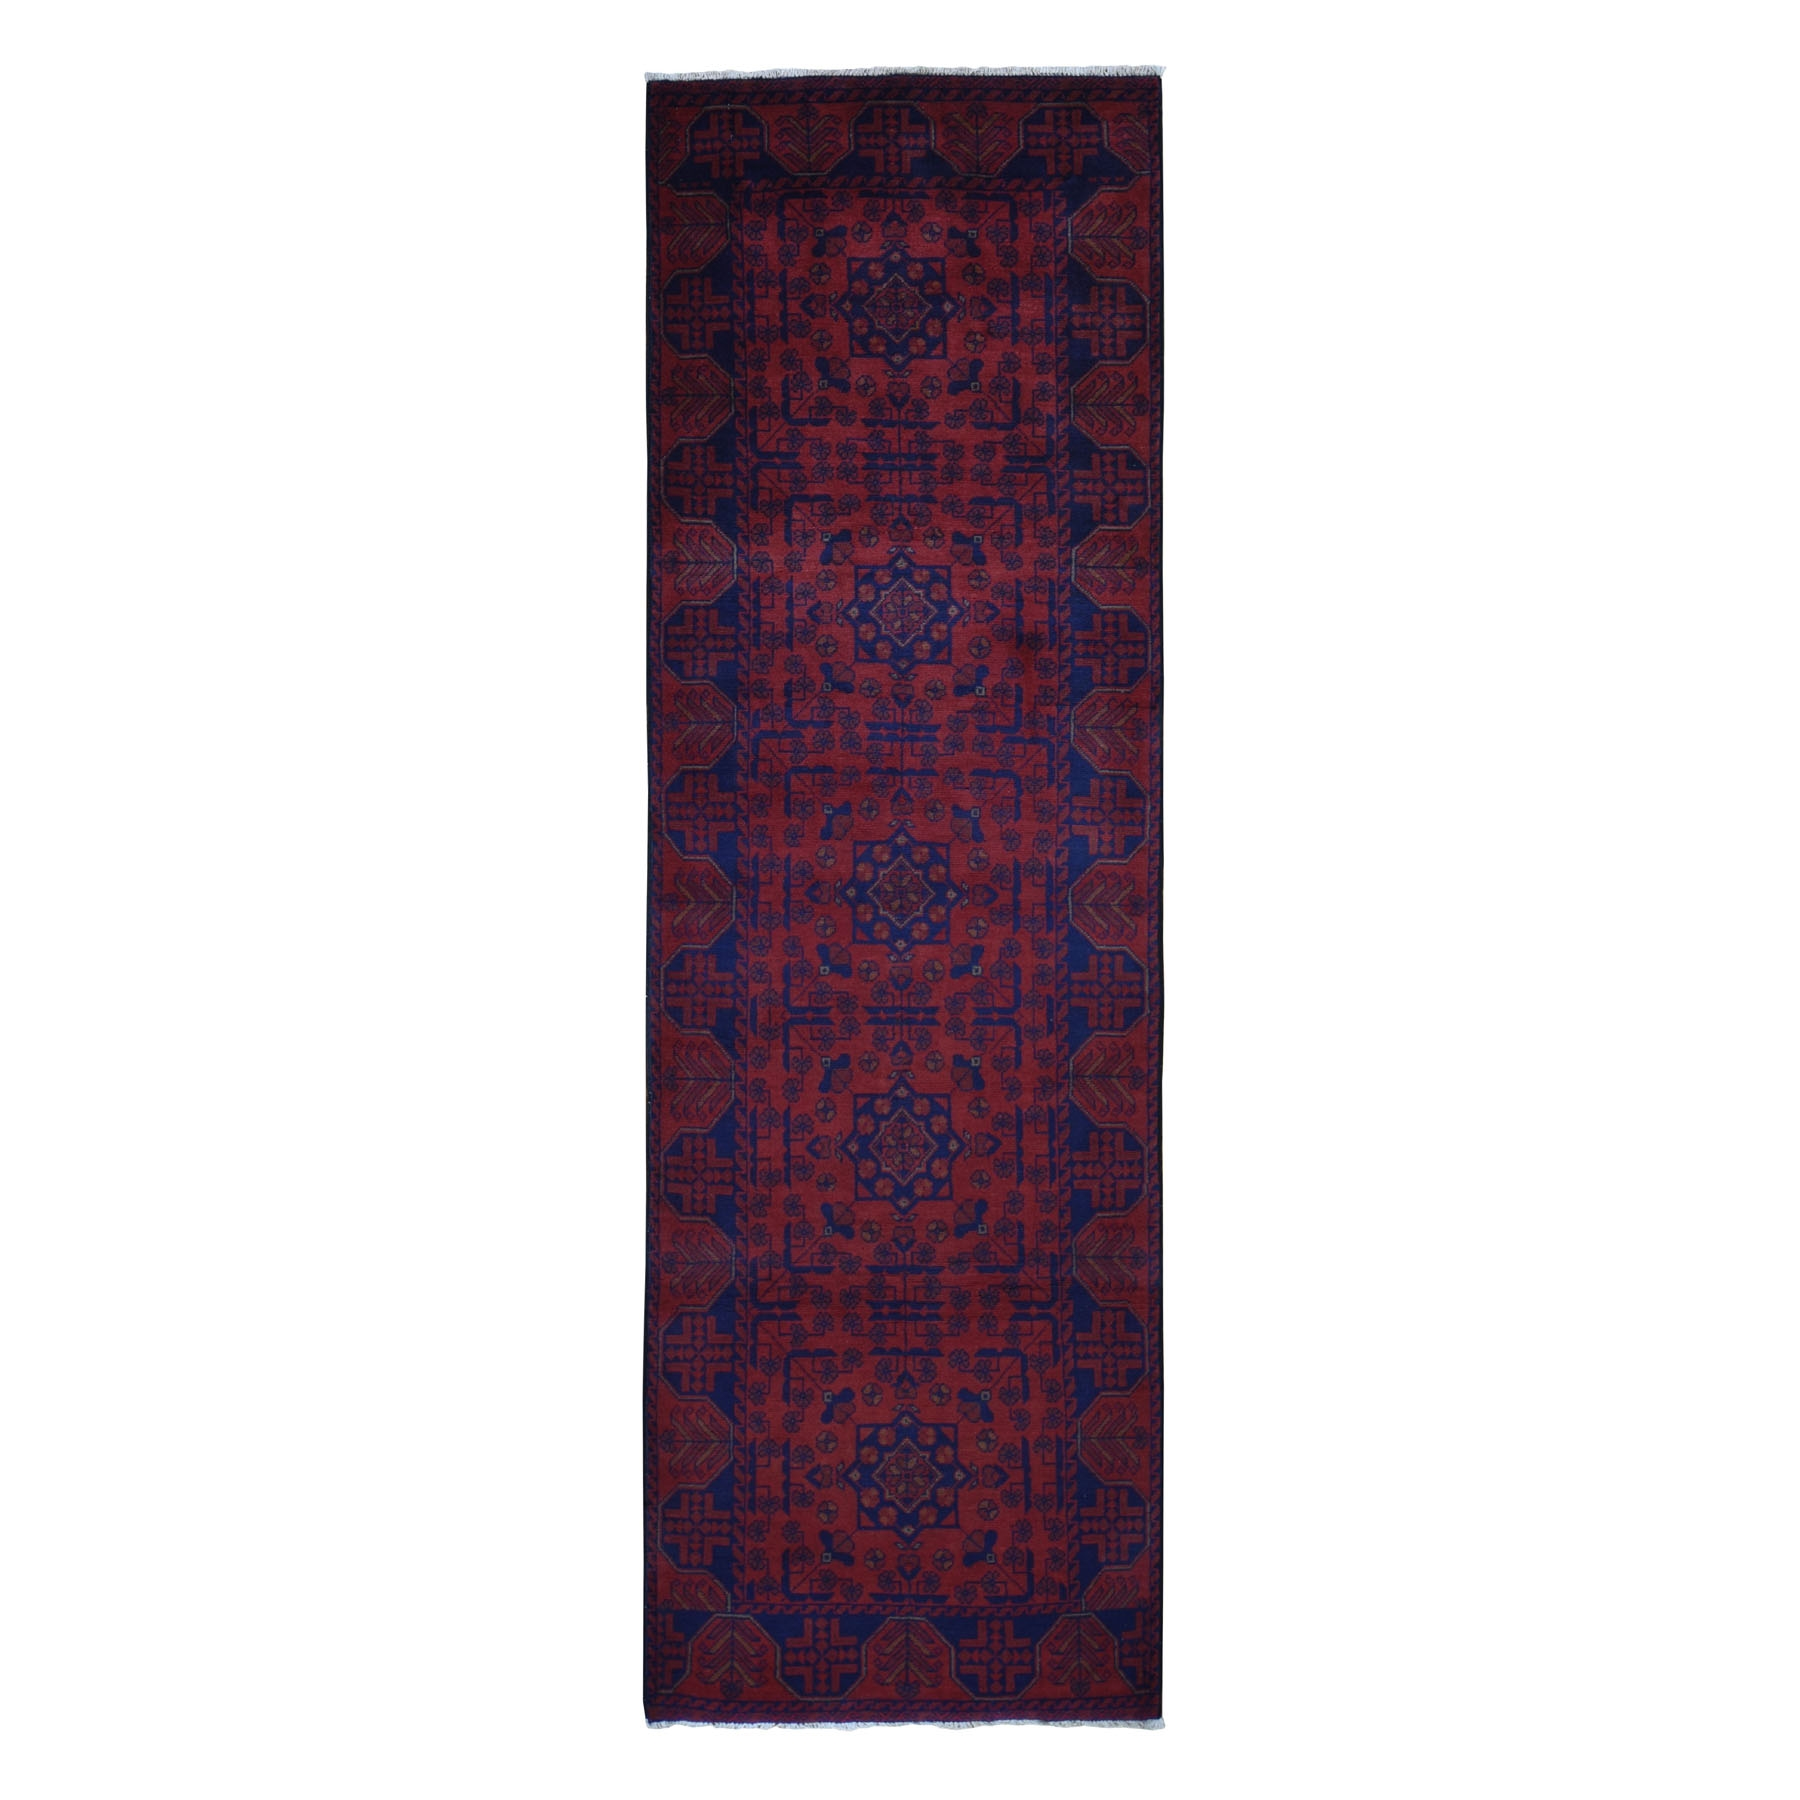 "2'7""X9'2"" Deep And Saturated Red Geometric Afghan Andkhoy Runner Pure Wool Hand Knotted Oriental Rug moad9686"